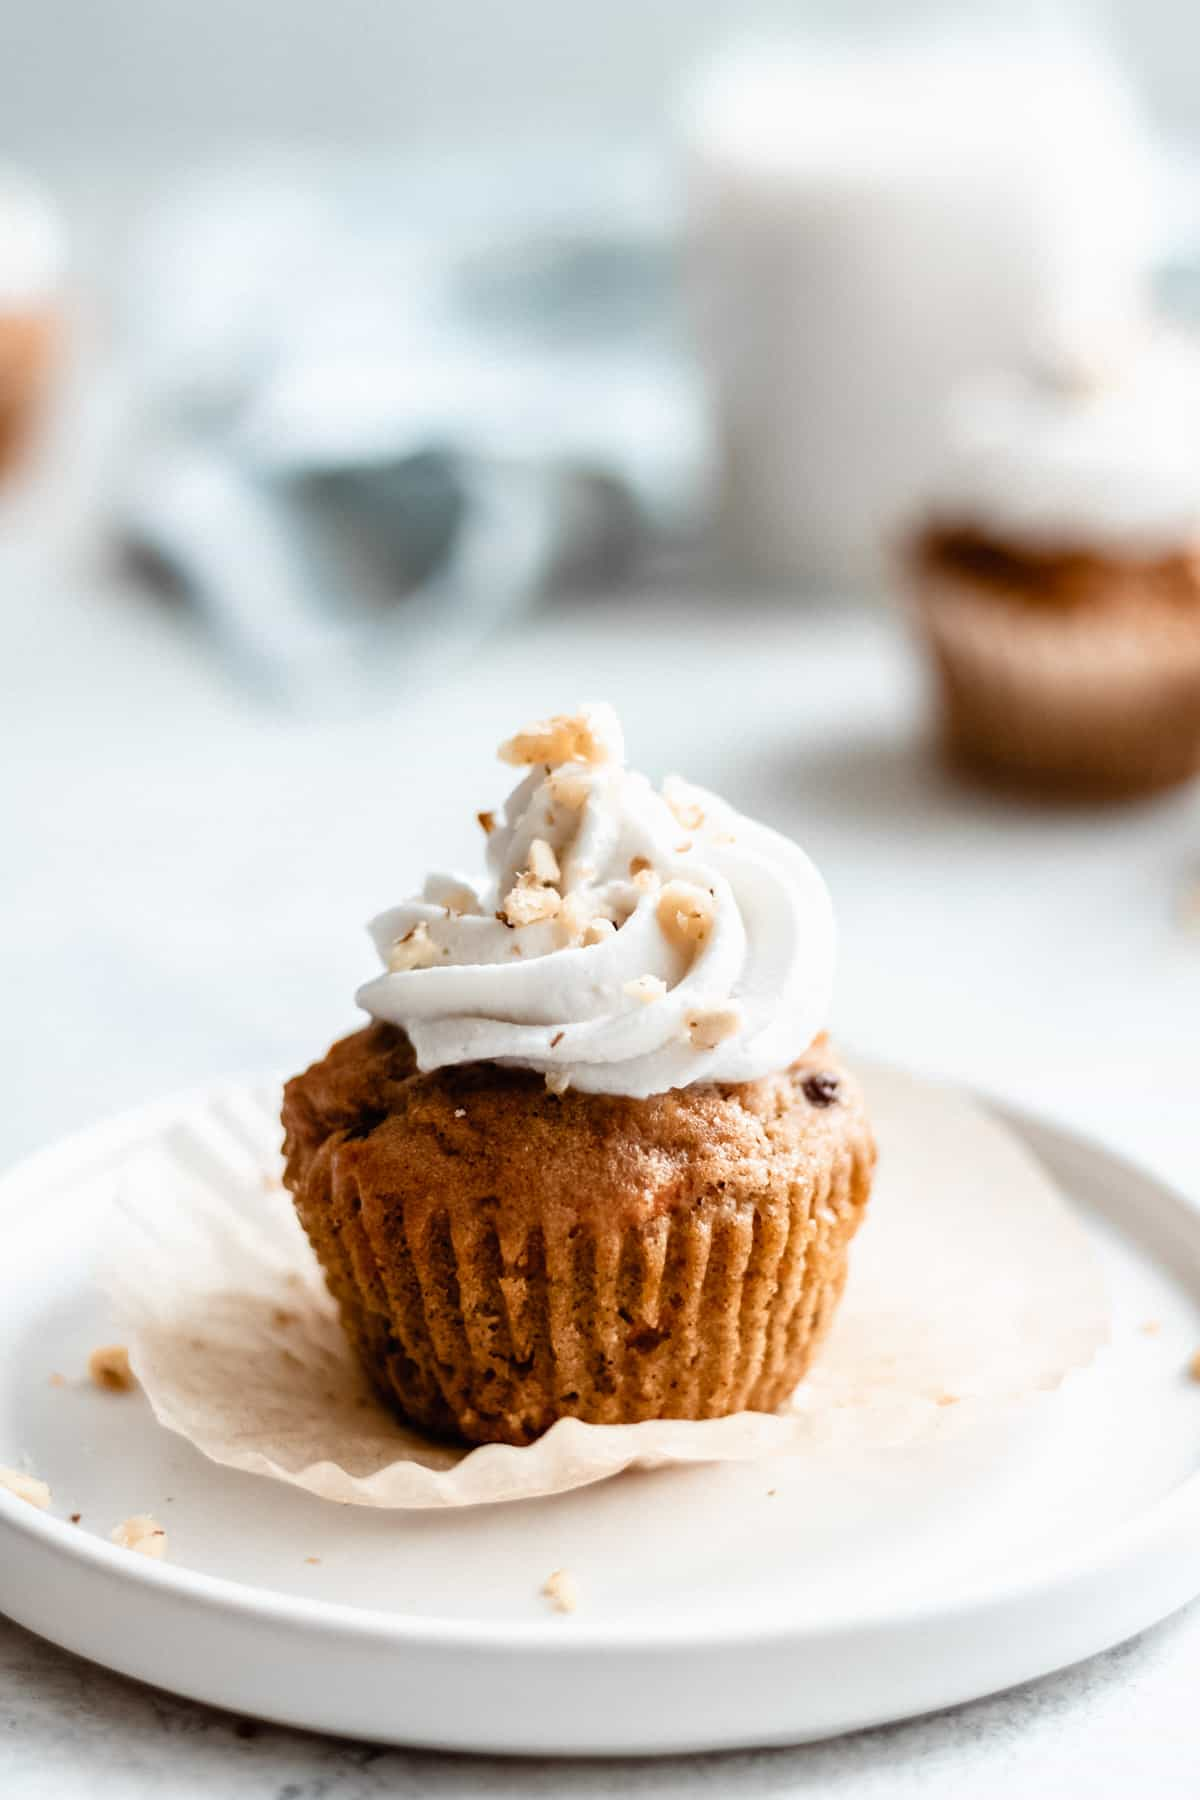 Cupcakology – It's All About The Cake